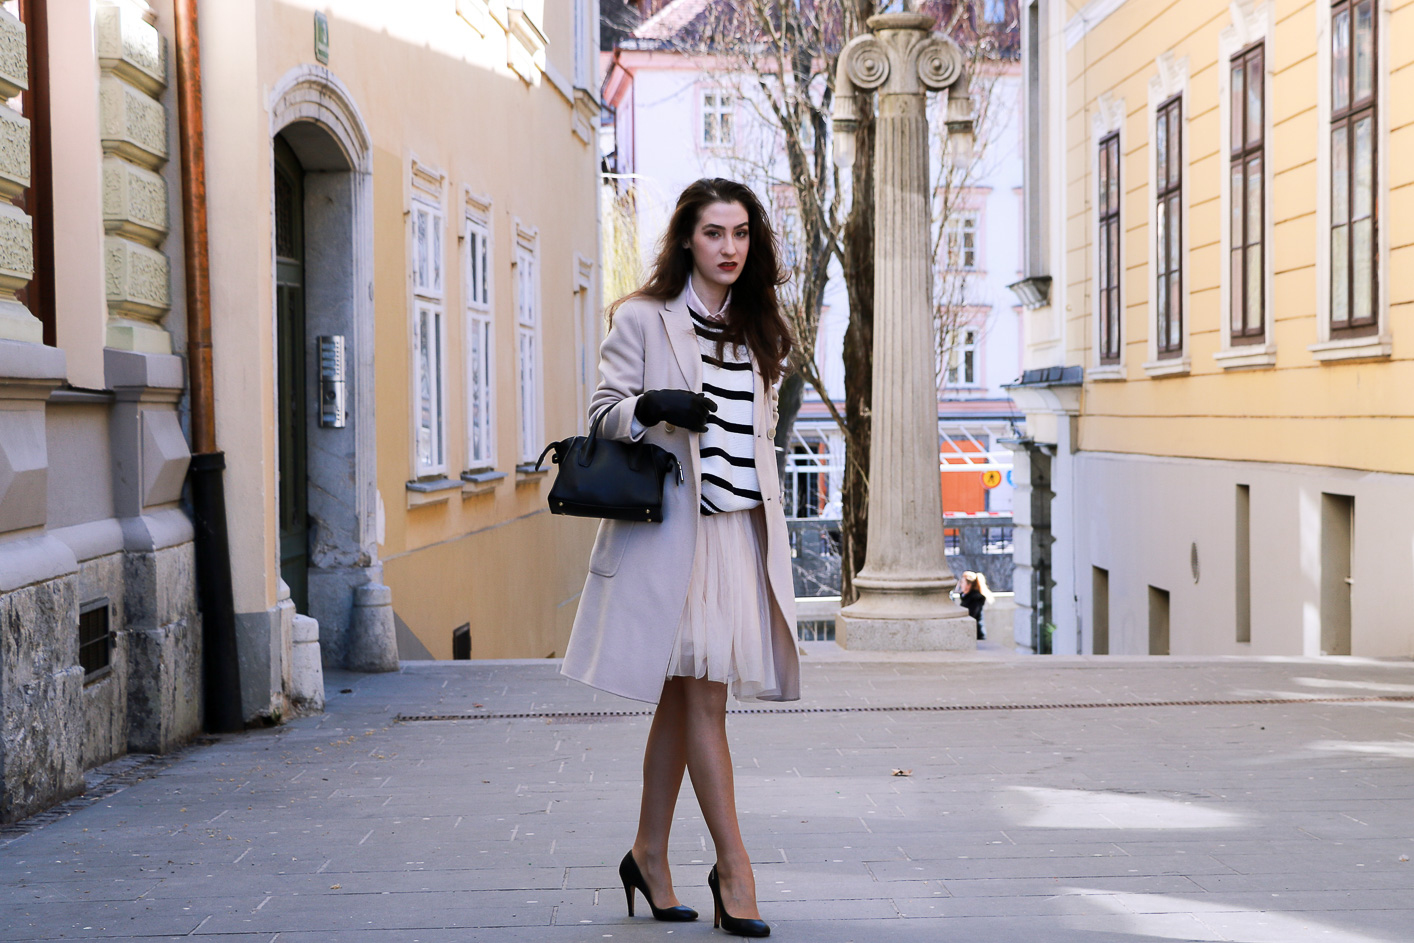 Fashion blogger Veronika Lipar of Brunette From Wall Street on how to wear a tutu skirt this spring in Ljubljana